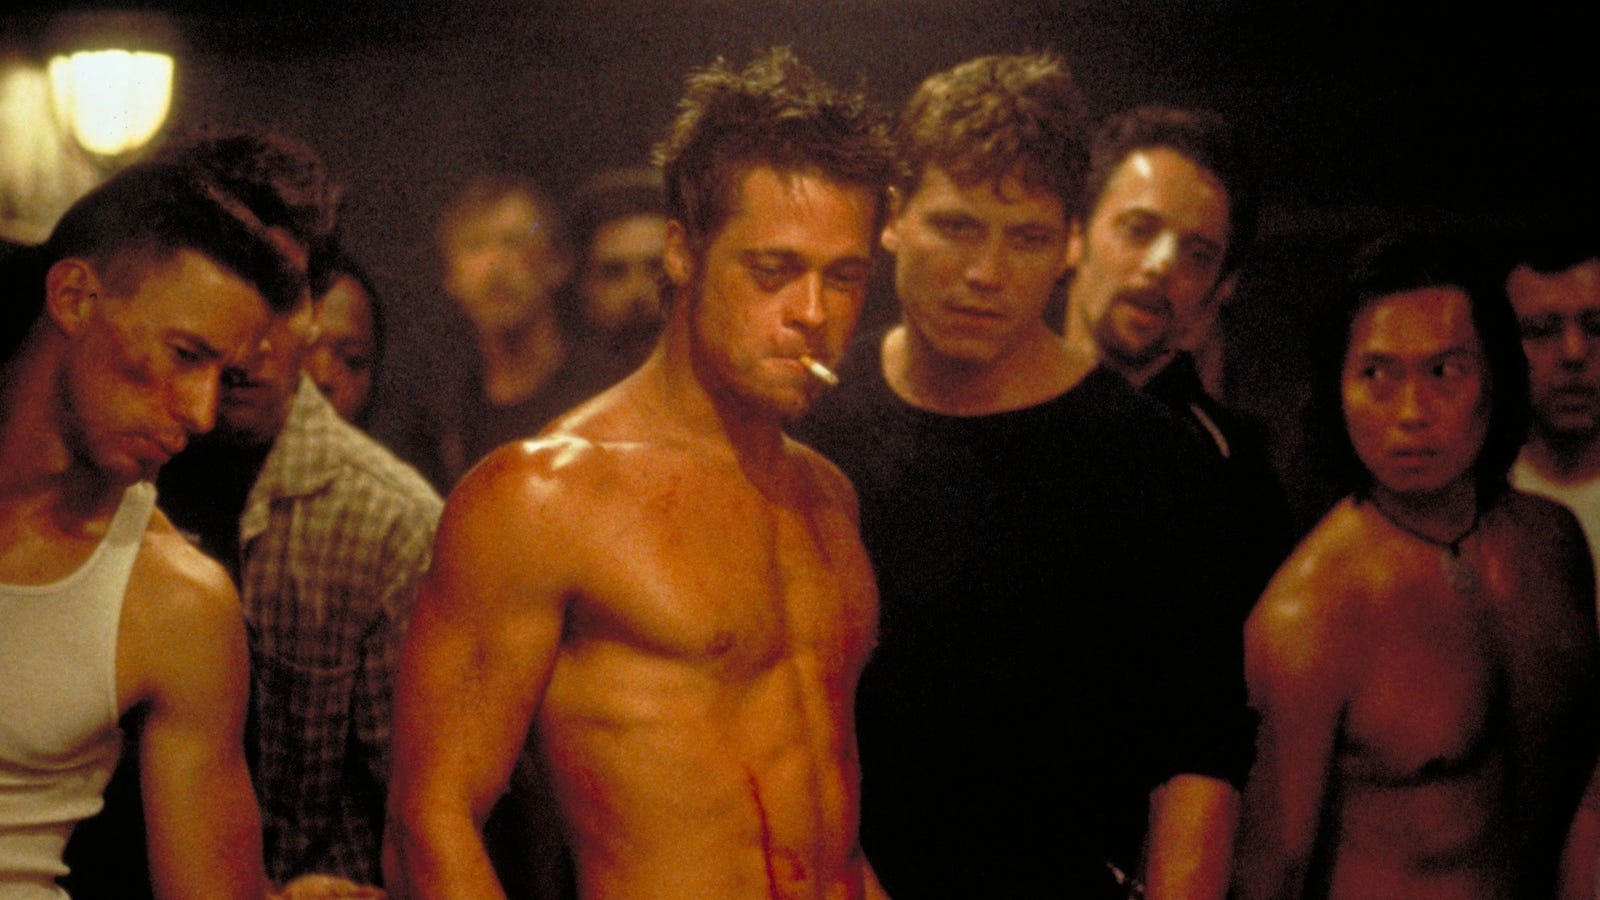 fight club a fantastic 15 year old film inspired by real fights